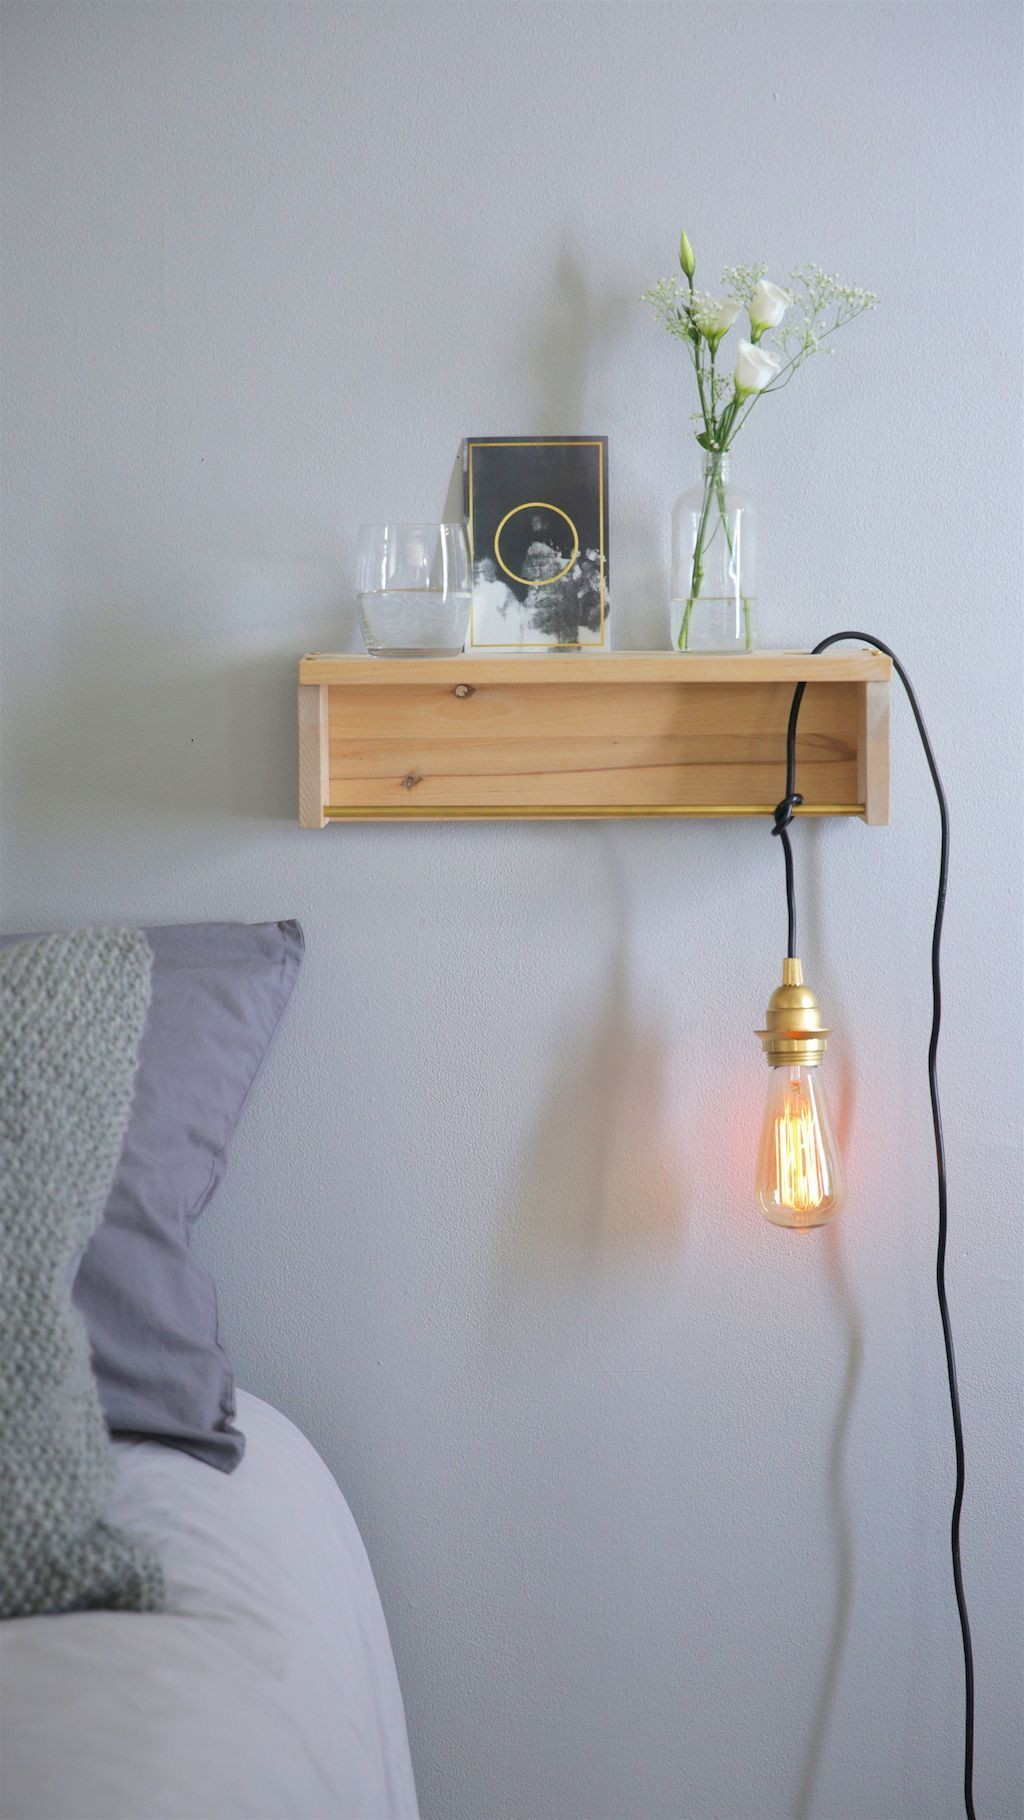 Clever small apartment hacks and organization ideas (48 ...